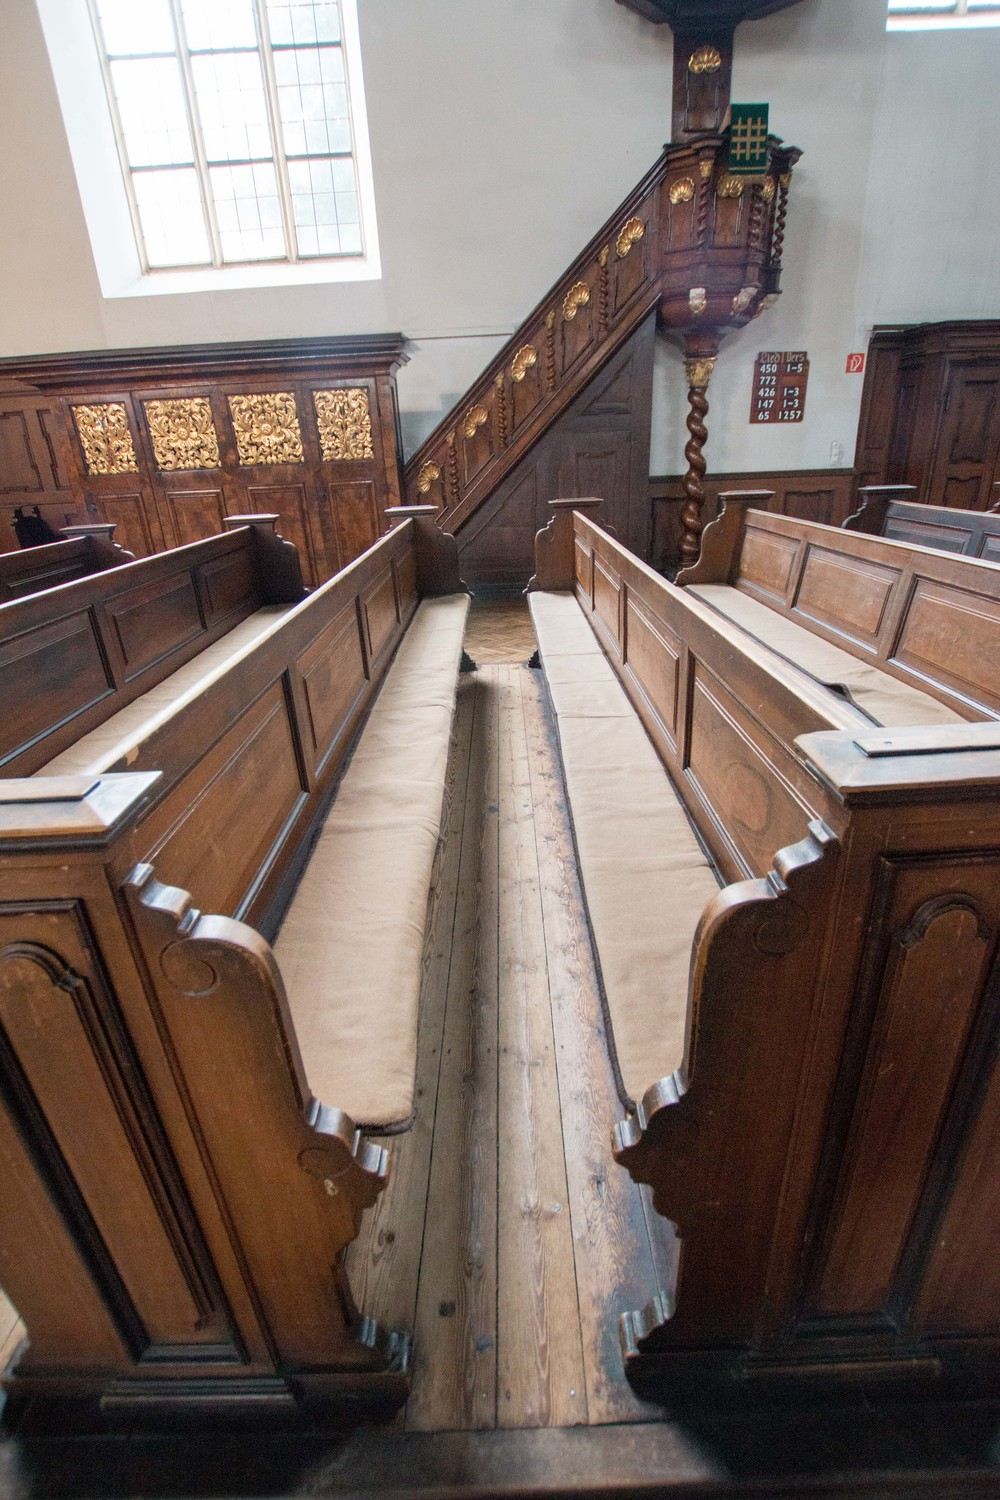 The double benches with the pulpit in the background